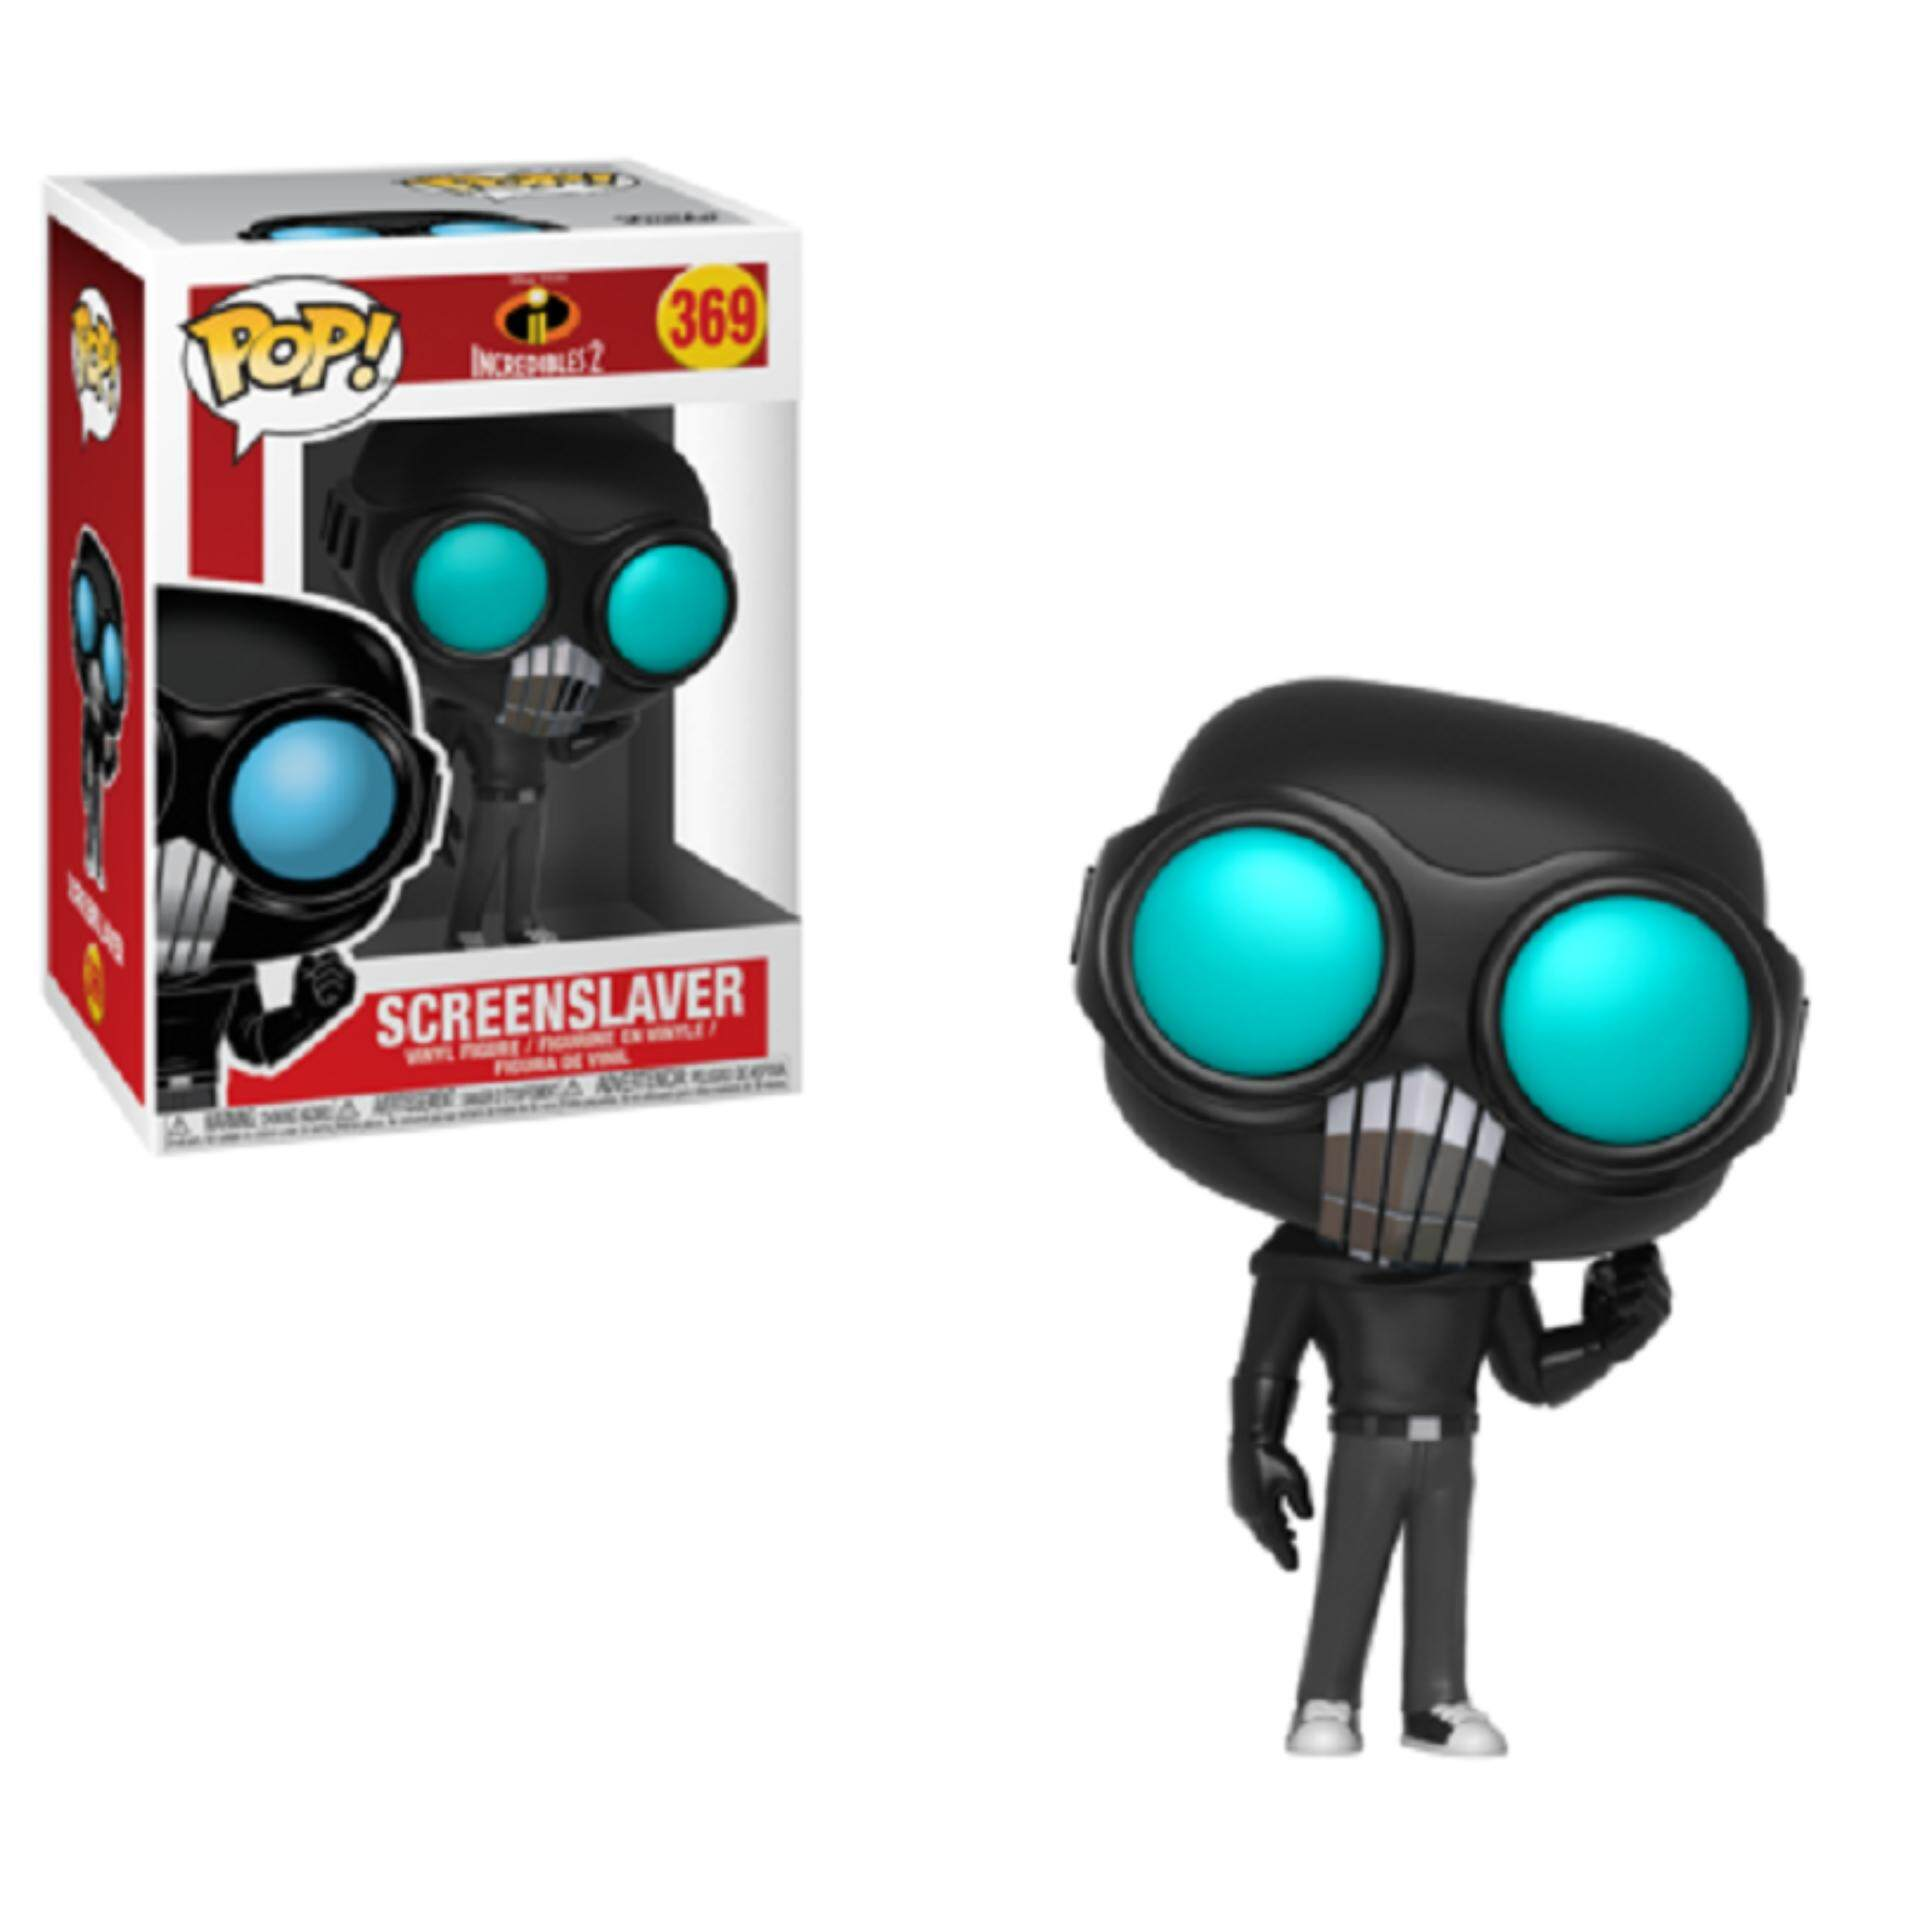 FUNKO POP! Disney Pixar Incredibles 2 Figure - Screenslaver